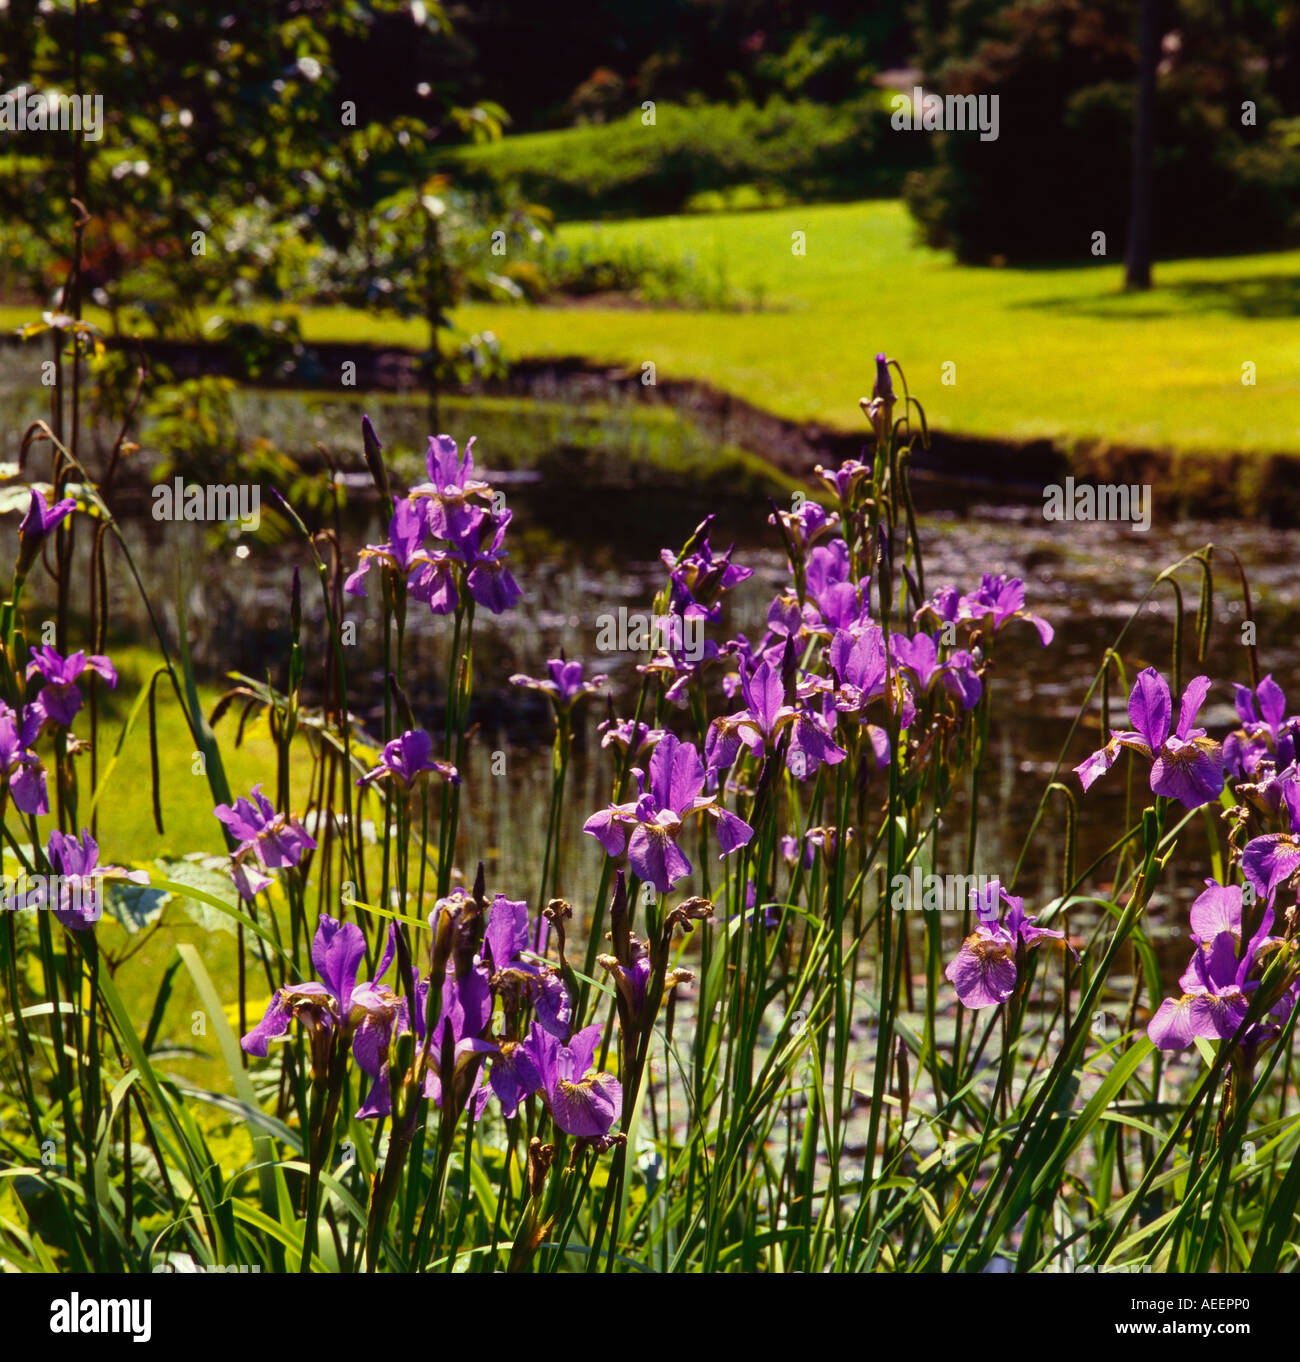 Picture of iris flowers stock photos picture of iris flowers stock purple iris flowers infront of a pond in a garden on a sunny day stock izmirmasajfo